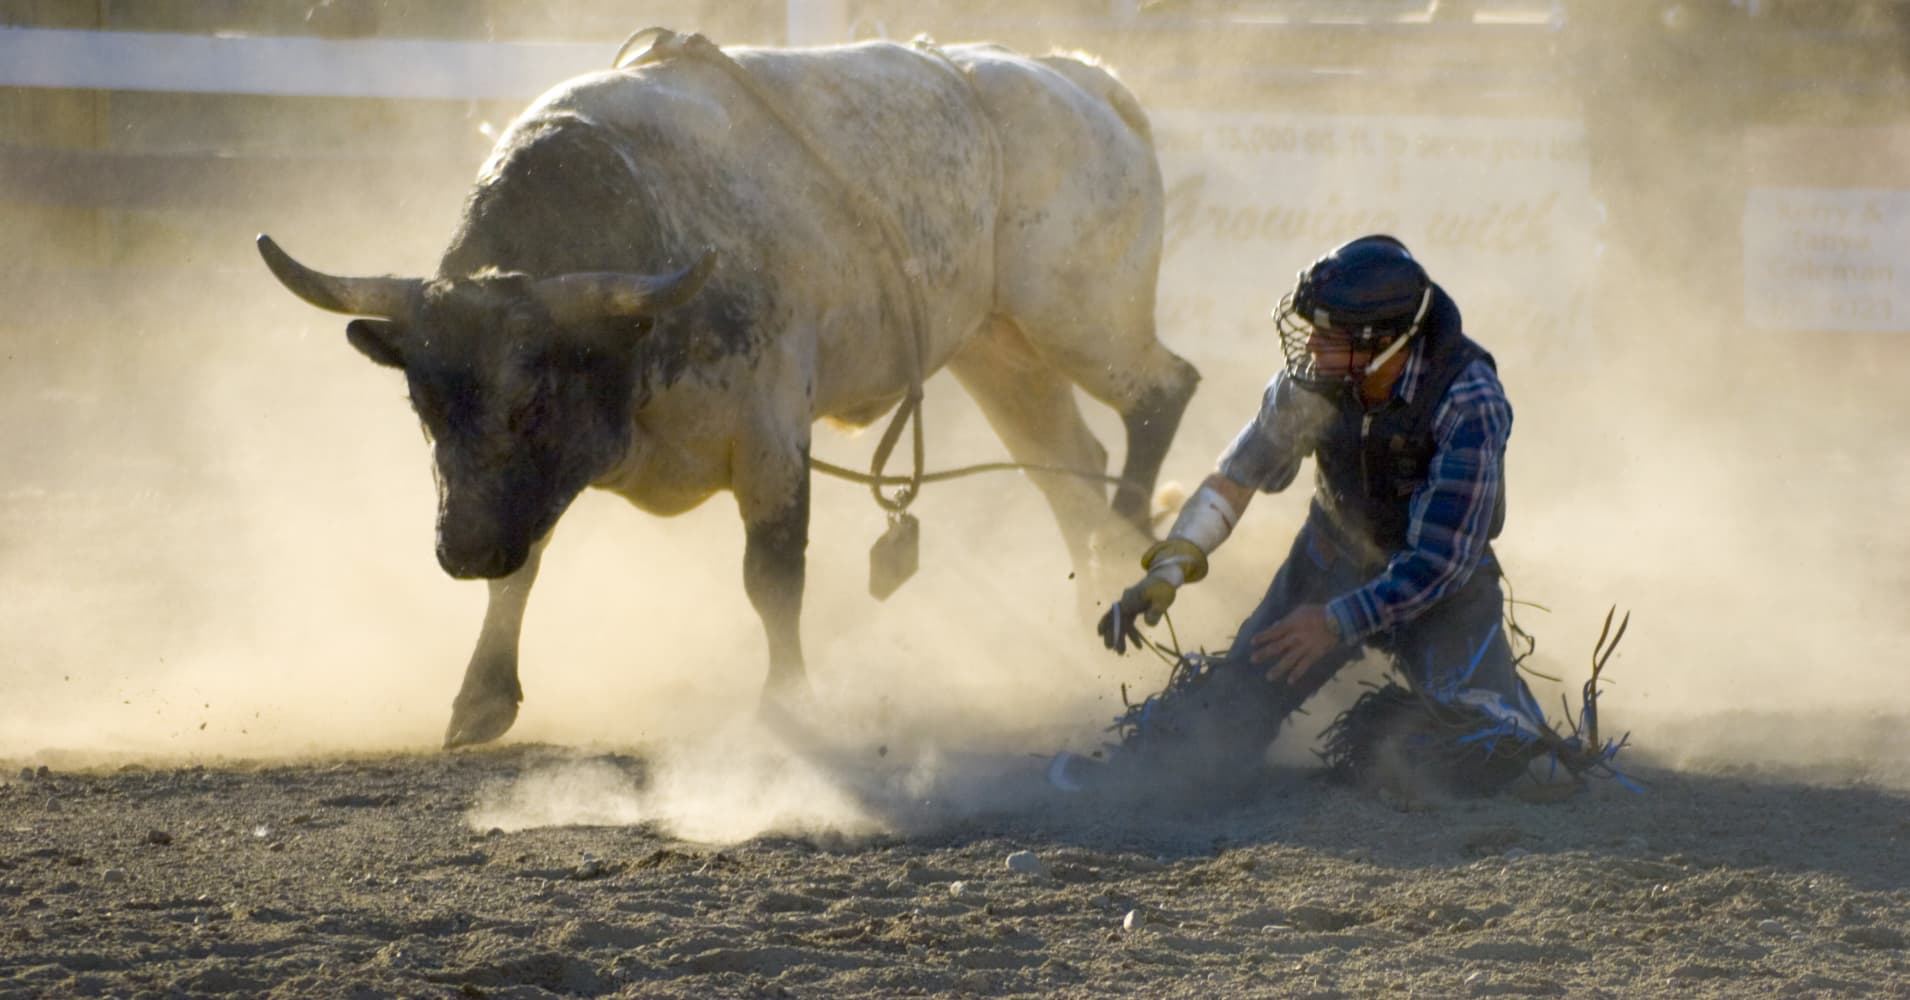 Bull market may find it hard to keep this momentum, but that doesn't mean it's over